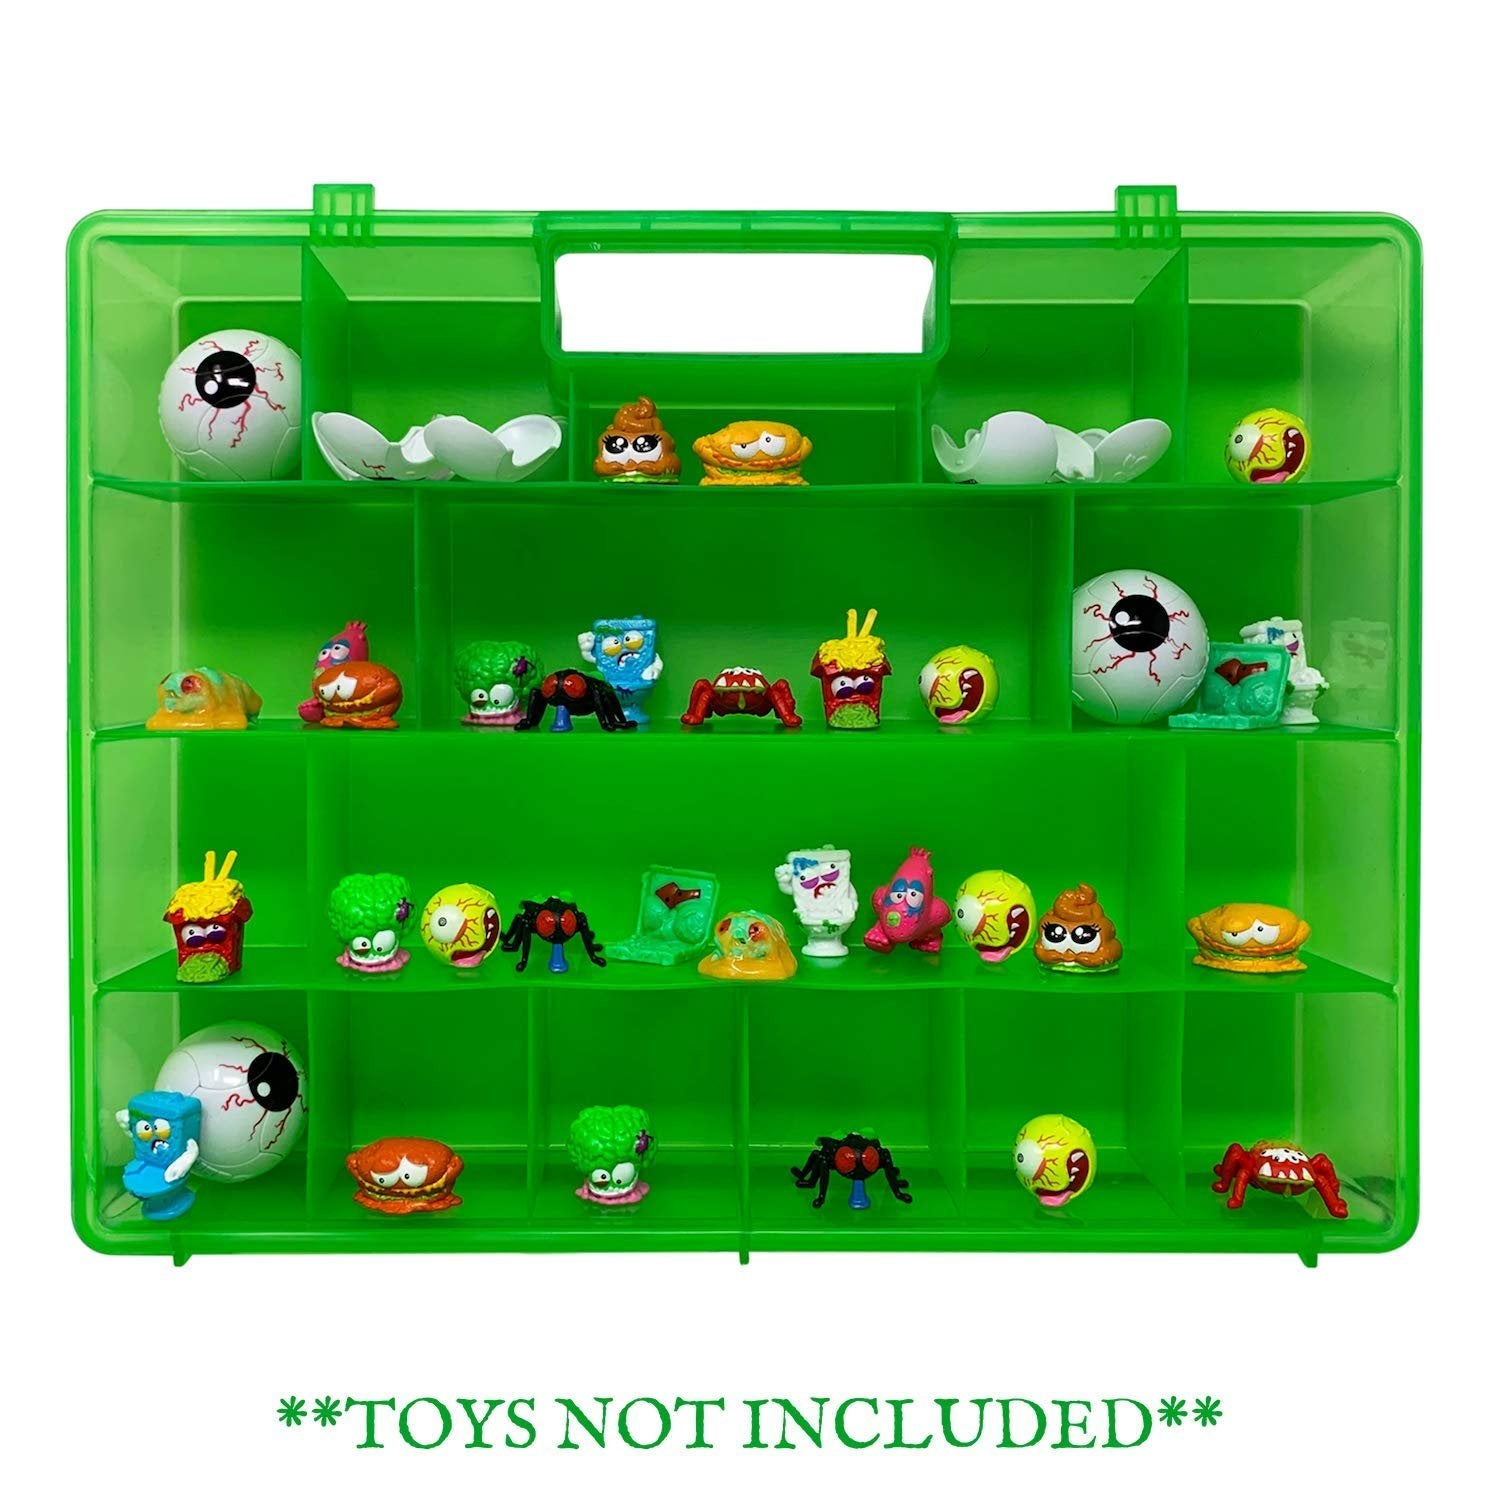 Life Made Better All-in-One Toy Organizer, Storage & Travel Case. Kid's Home Storage & Compatible with All Smashers Gross Mini Figures, Travel Case by LMB